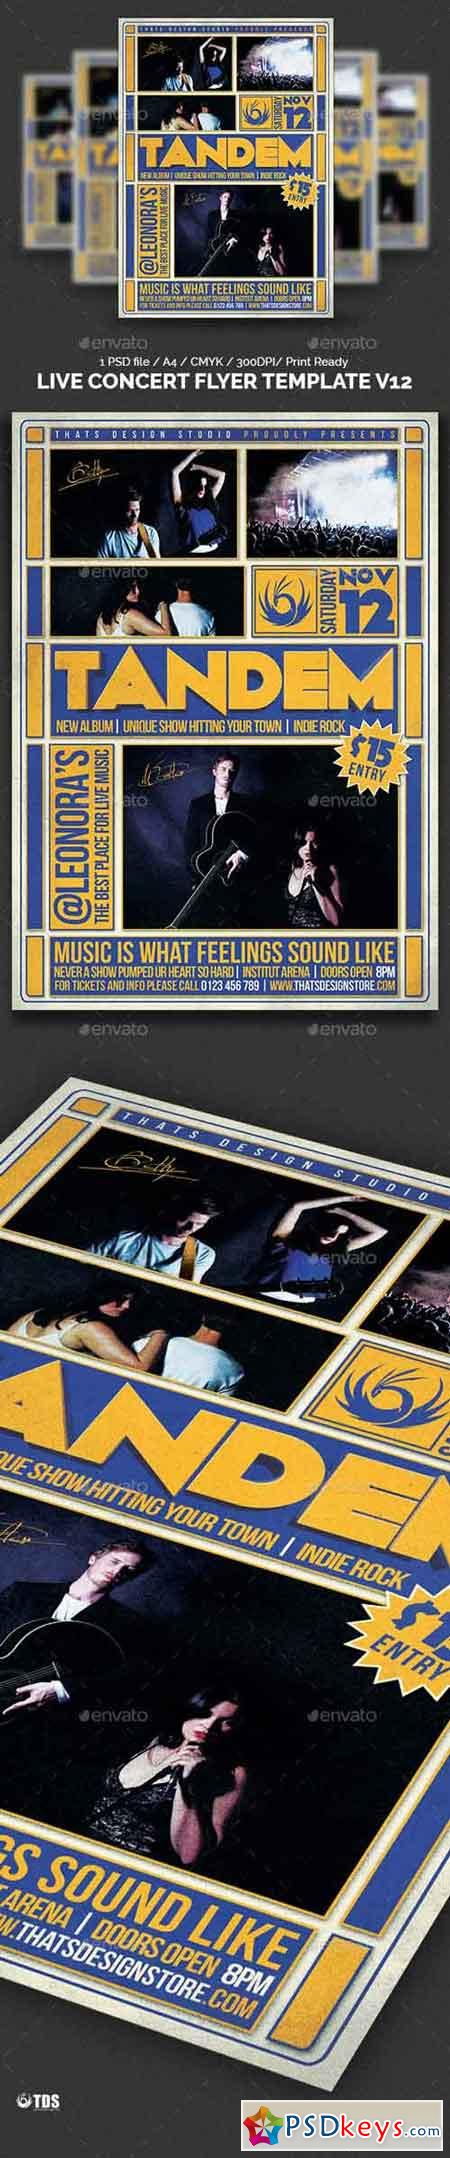 CONCERT » page 3 » Free Download Photoshop Vector Stock image Via ...